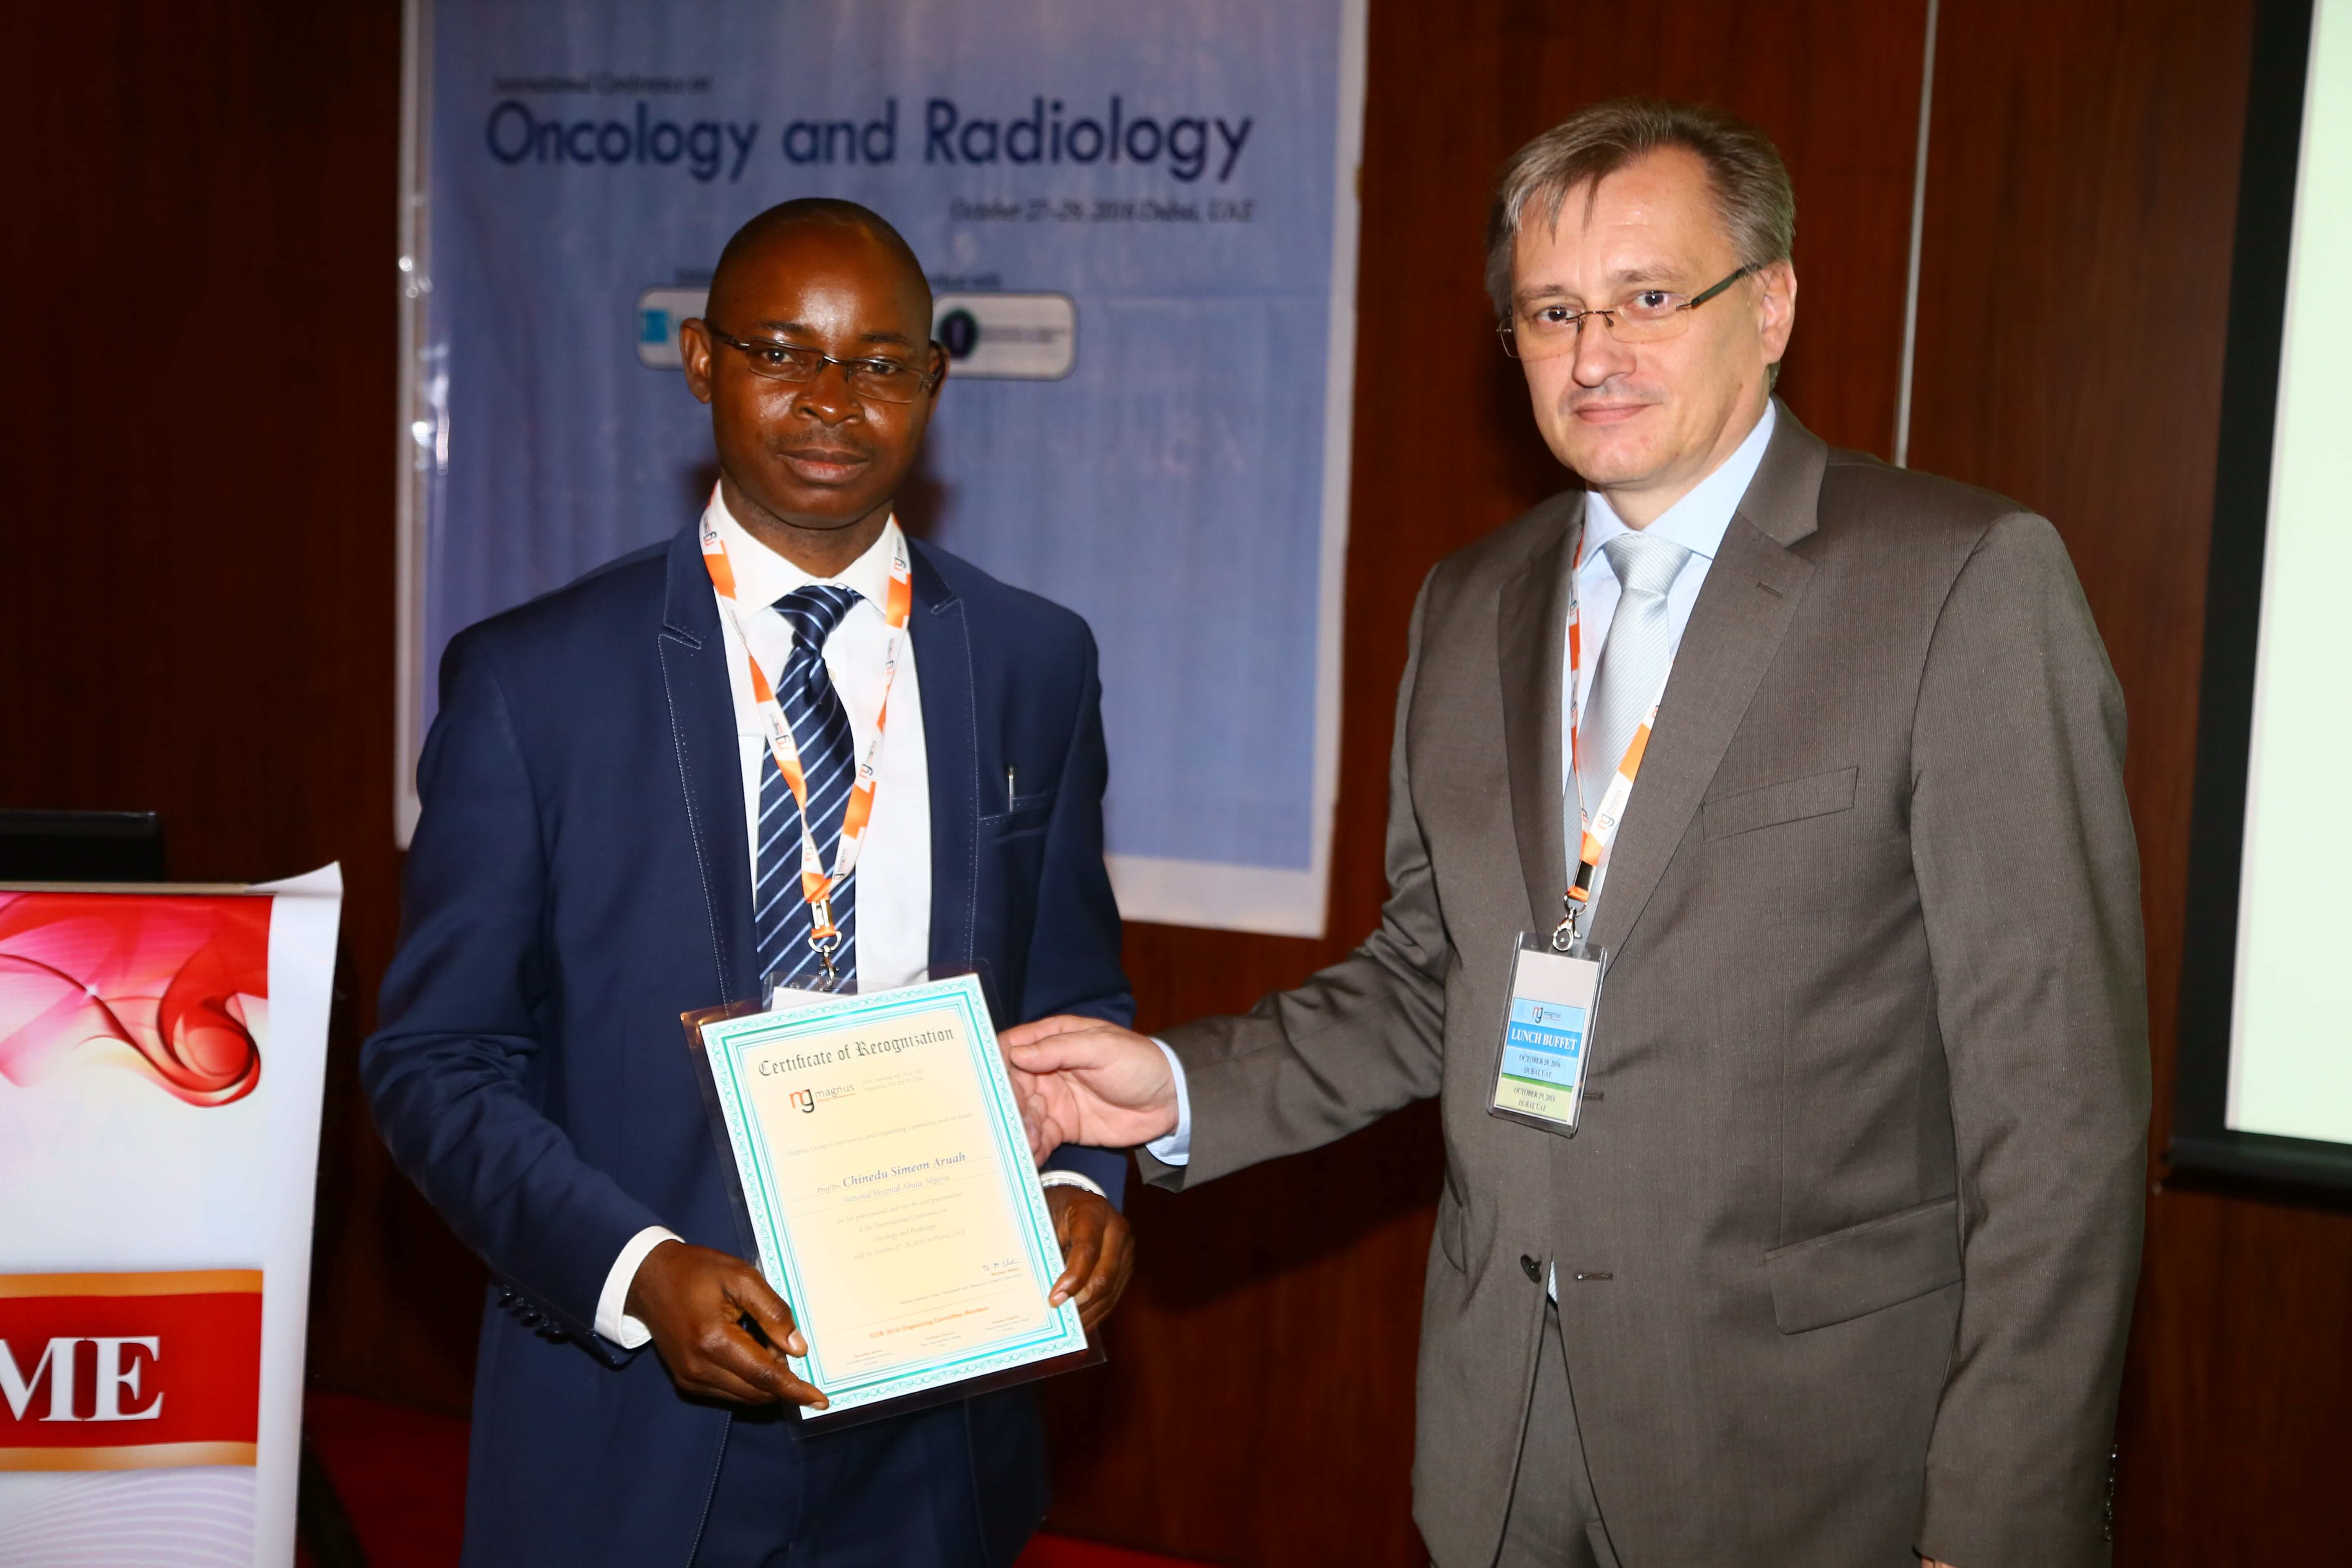 Cancer conference - Dr. Chinedu Simeon Aruah